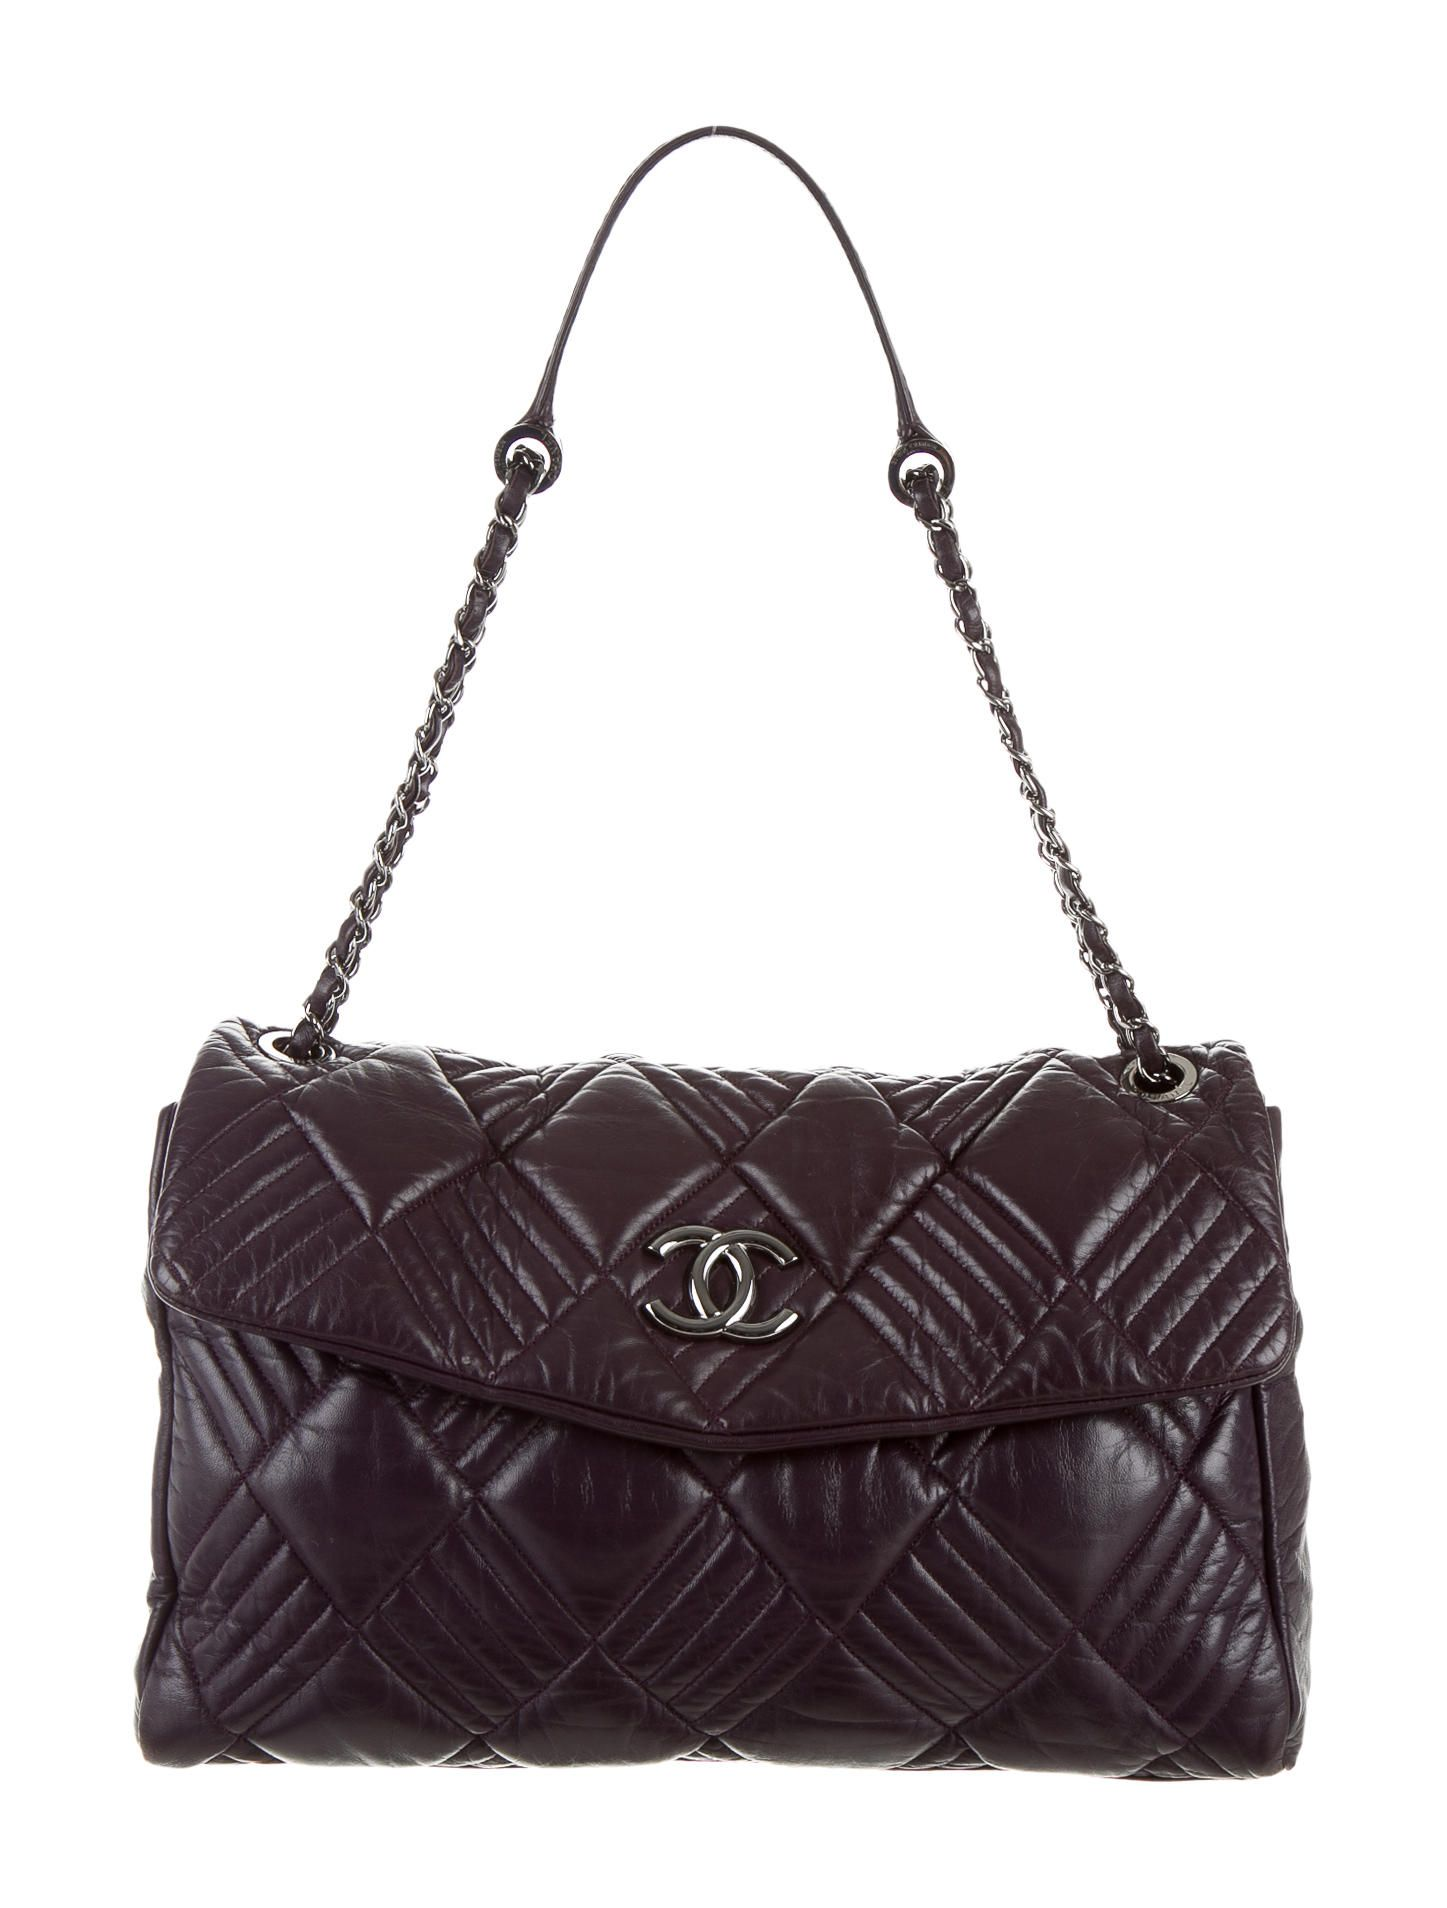 ed0c448729aa6d Purple quilted leather Chanel In And Out Maxi Flap Bag with silver-tone  hardware, chain-link and leather shoulder straps, grey printed woven  interior lining ...